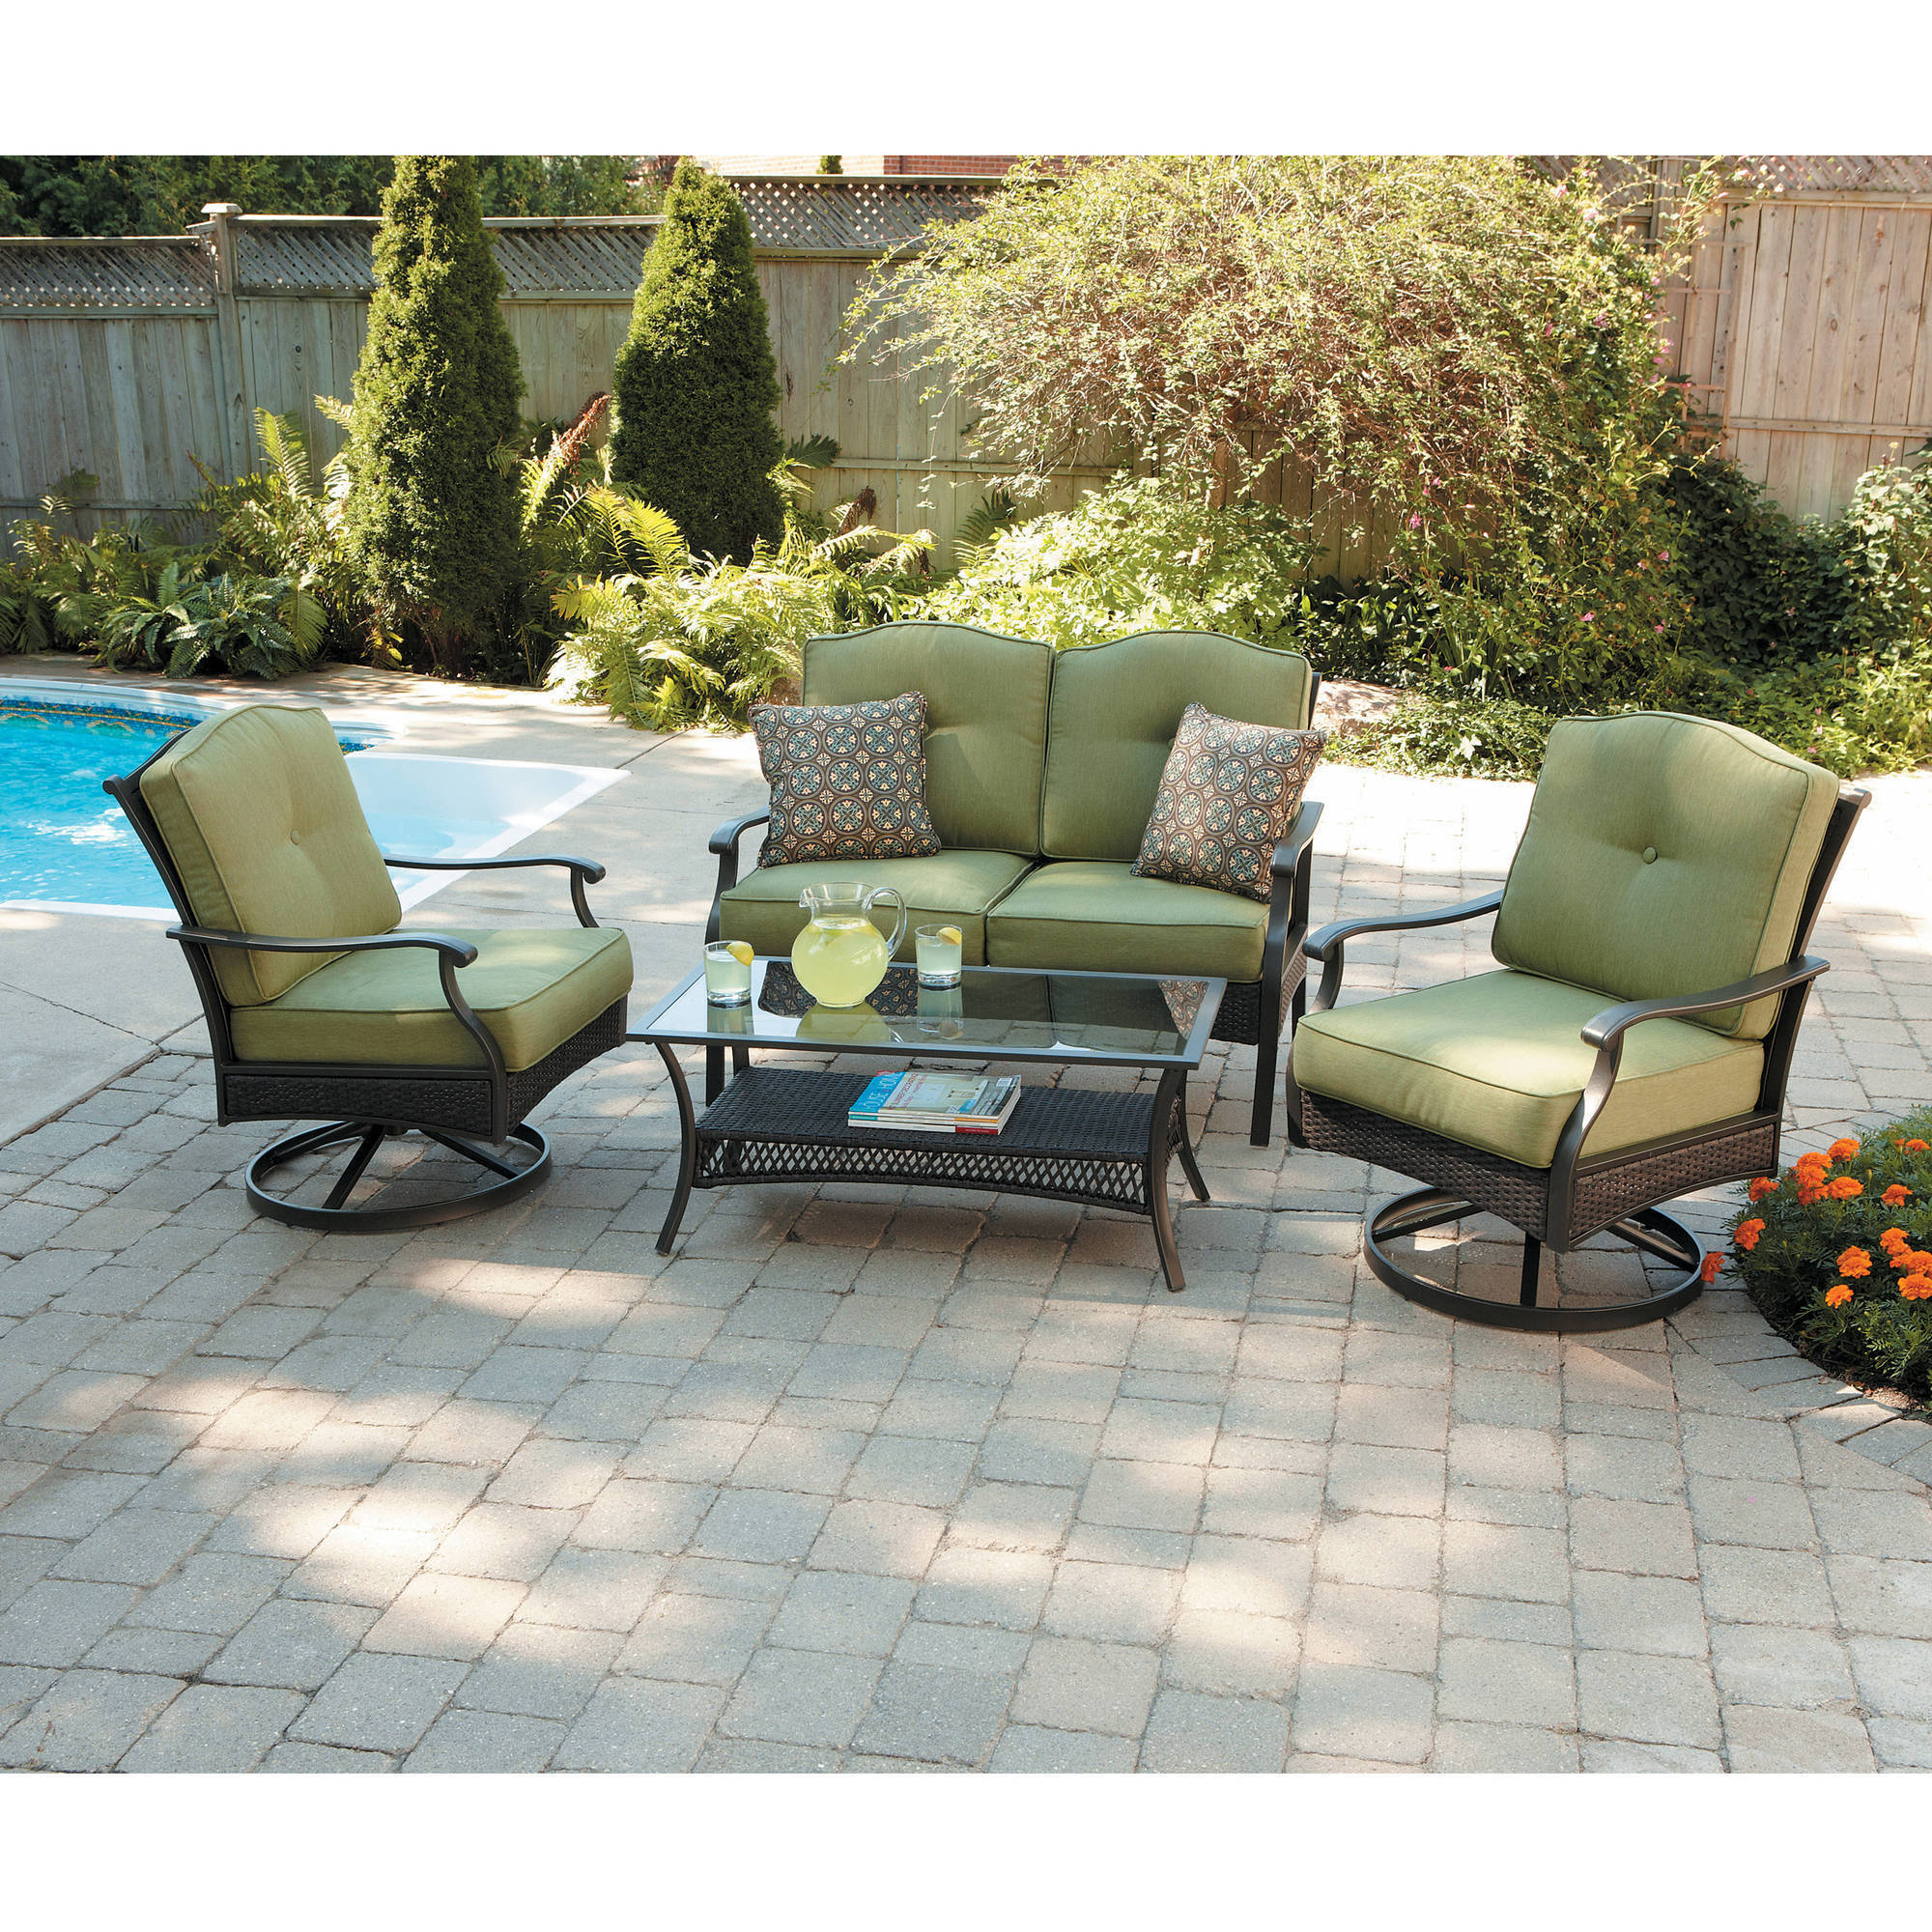 Better Homes and Gardens Providence 4-Piece Patio Conversation Set, Green